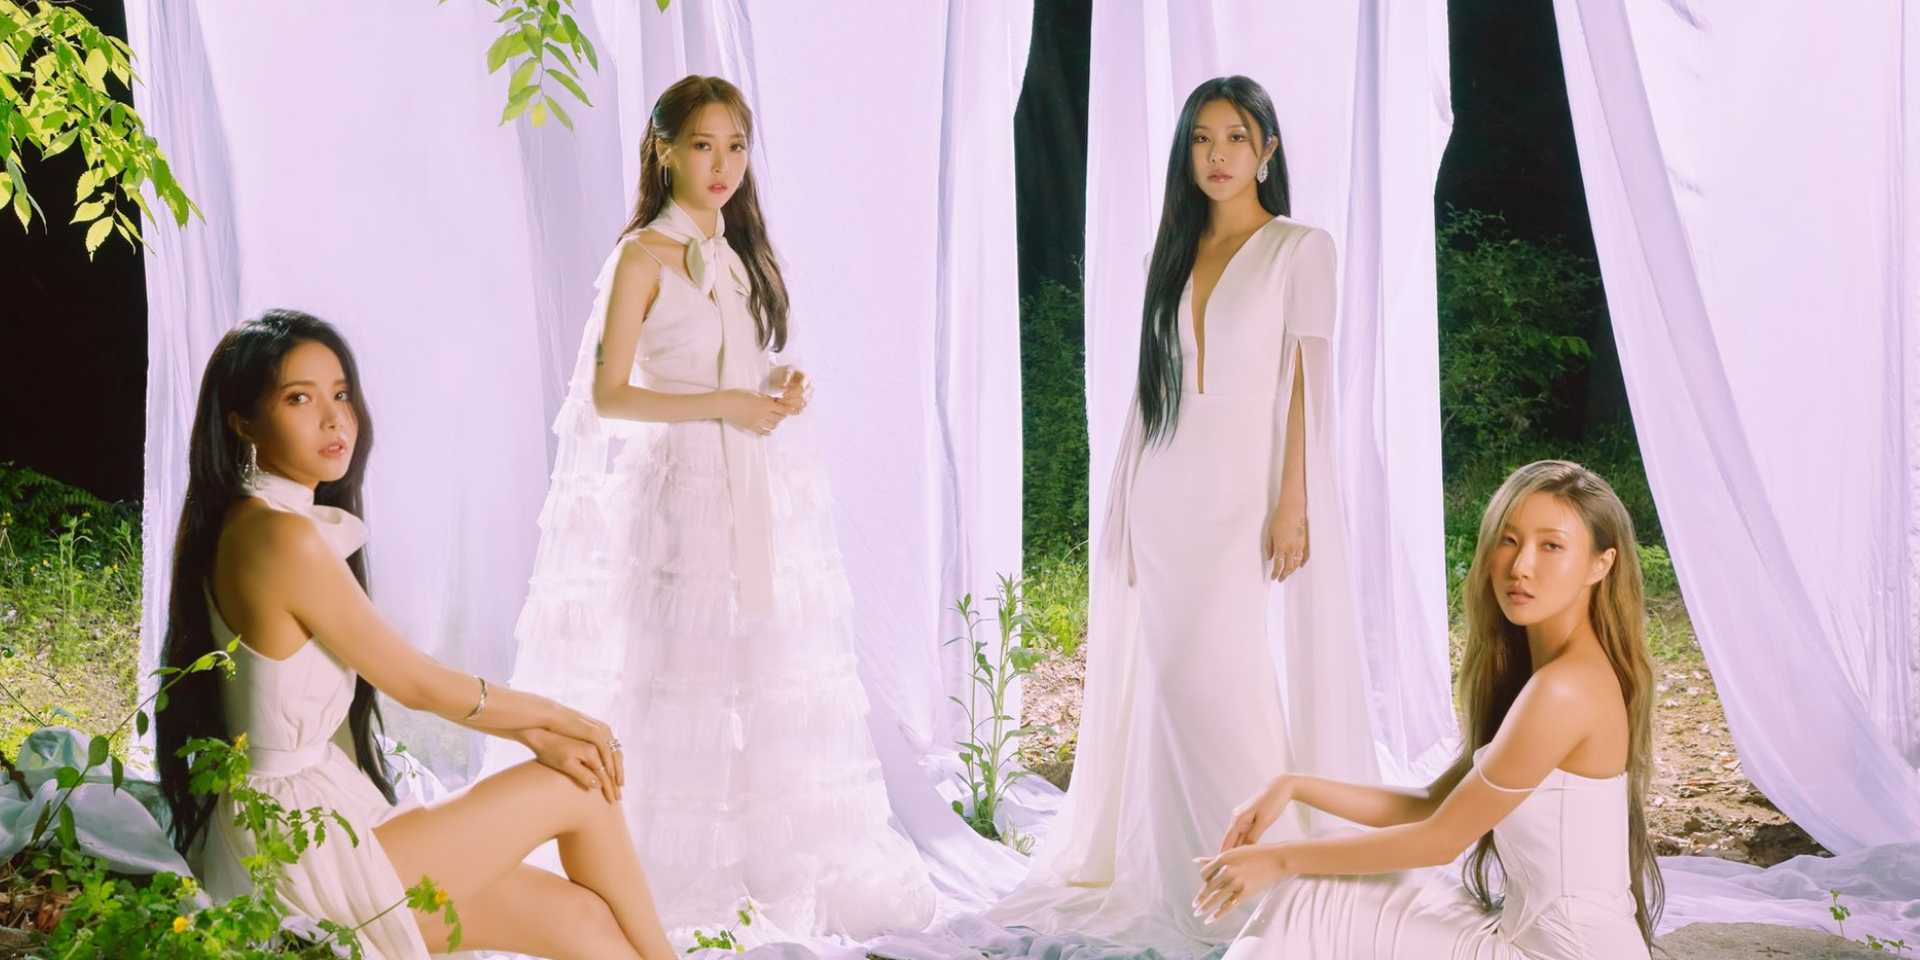 MAMAMOO announce WAW online concert happening this August